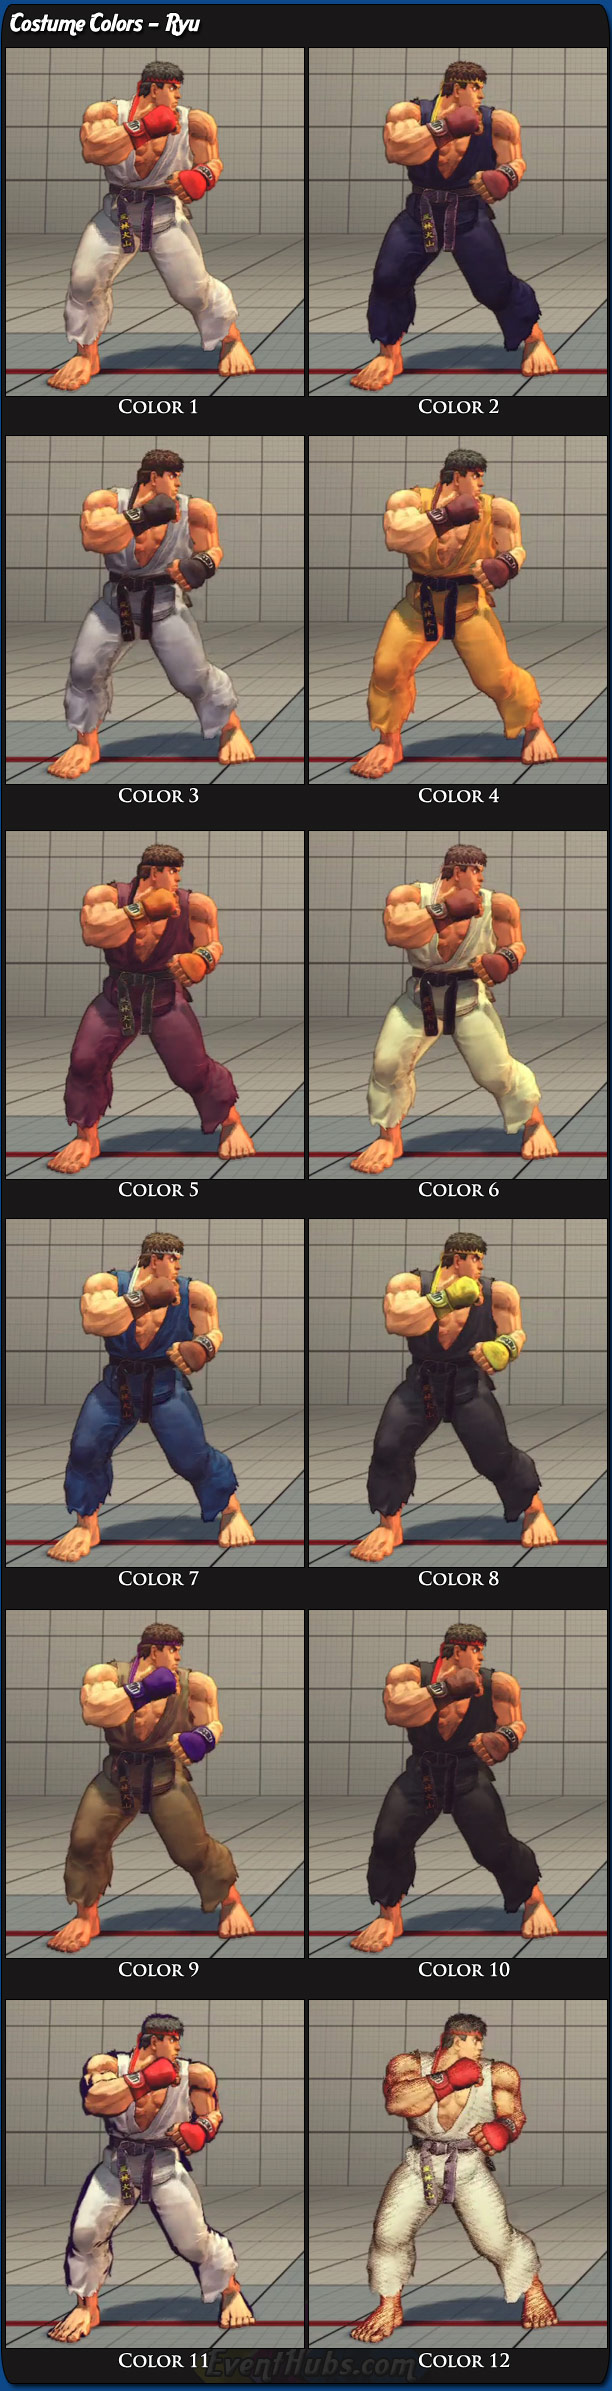 Ryu's main costume colors for Super Street Fighter 4